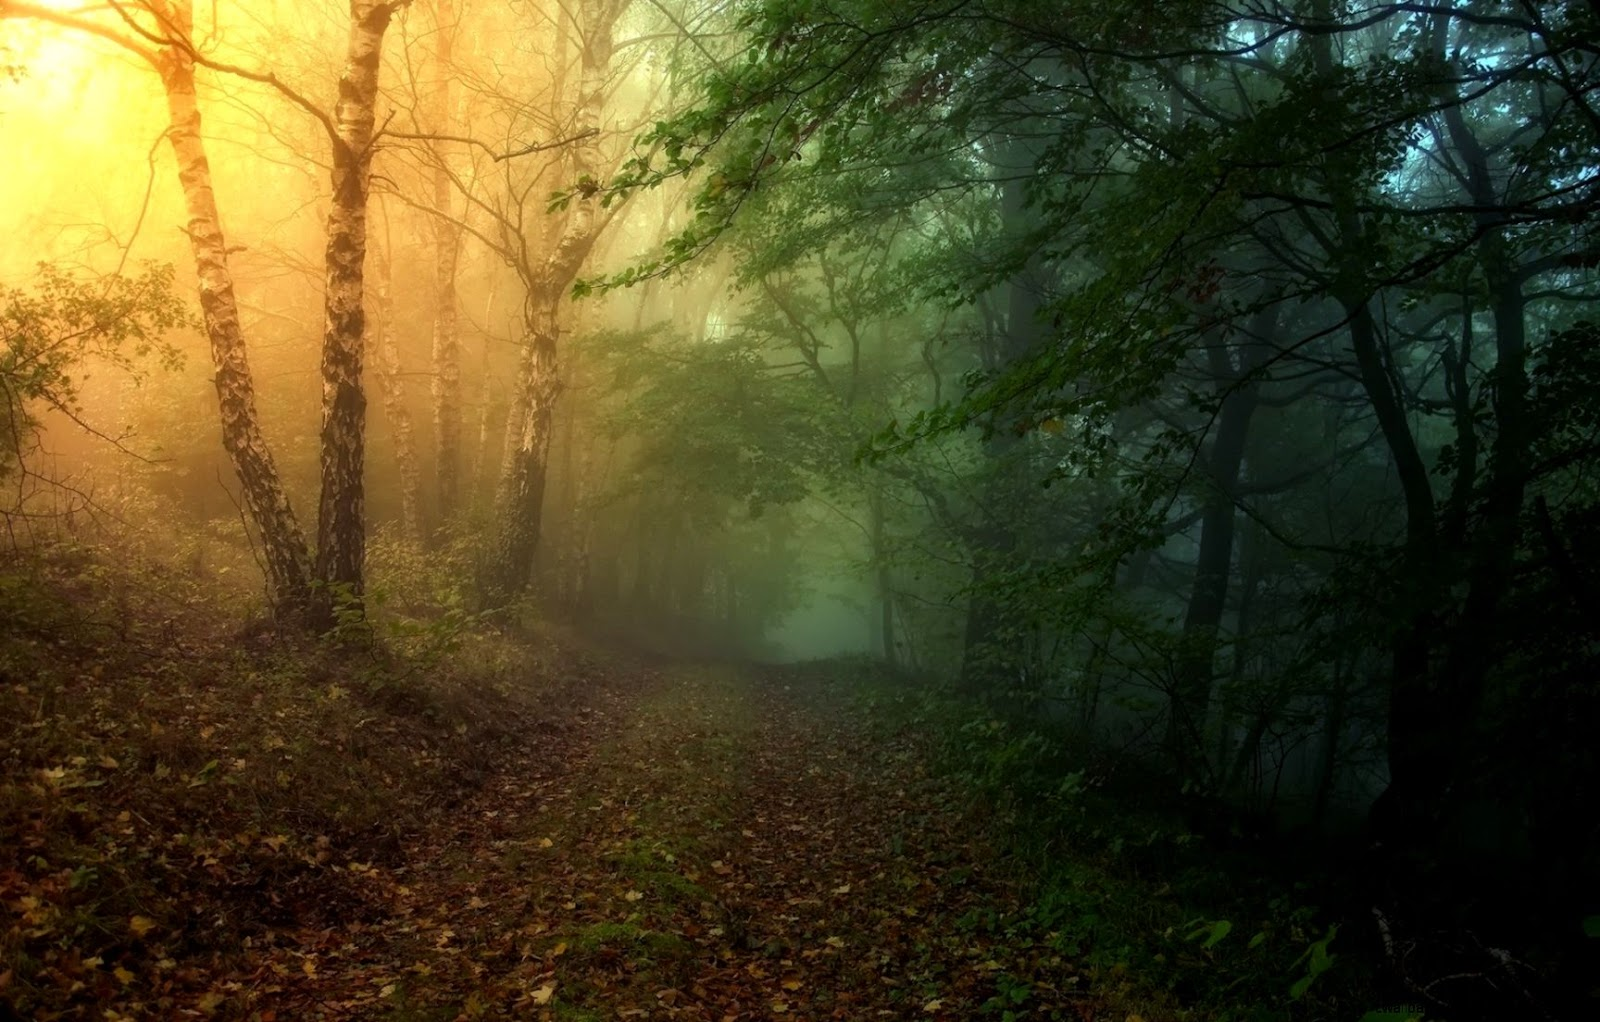 Mysterious and Magical Forest